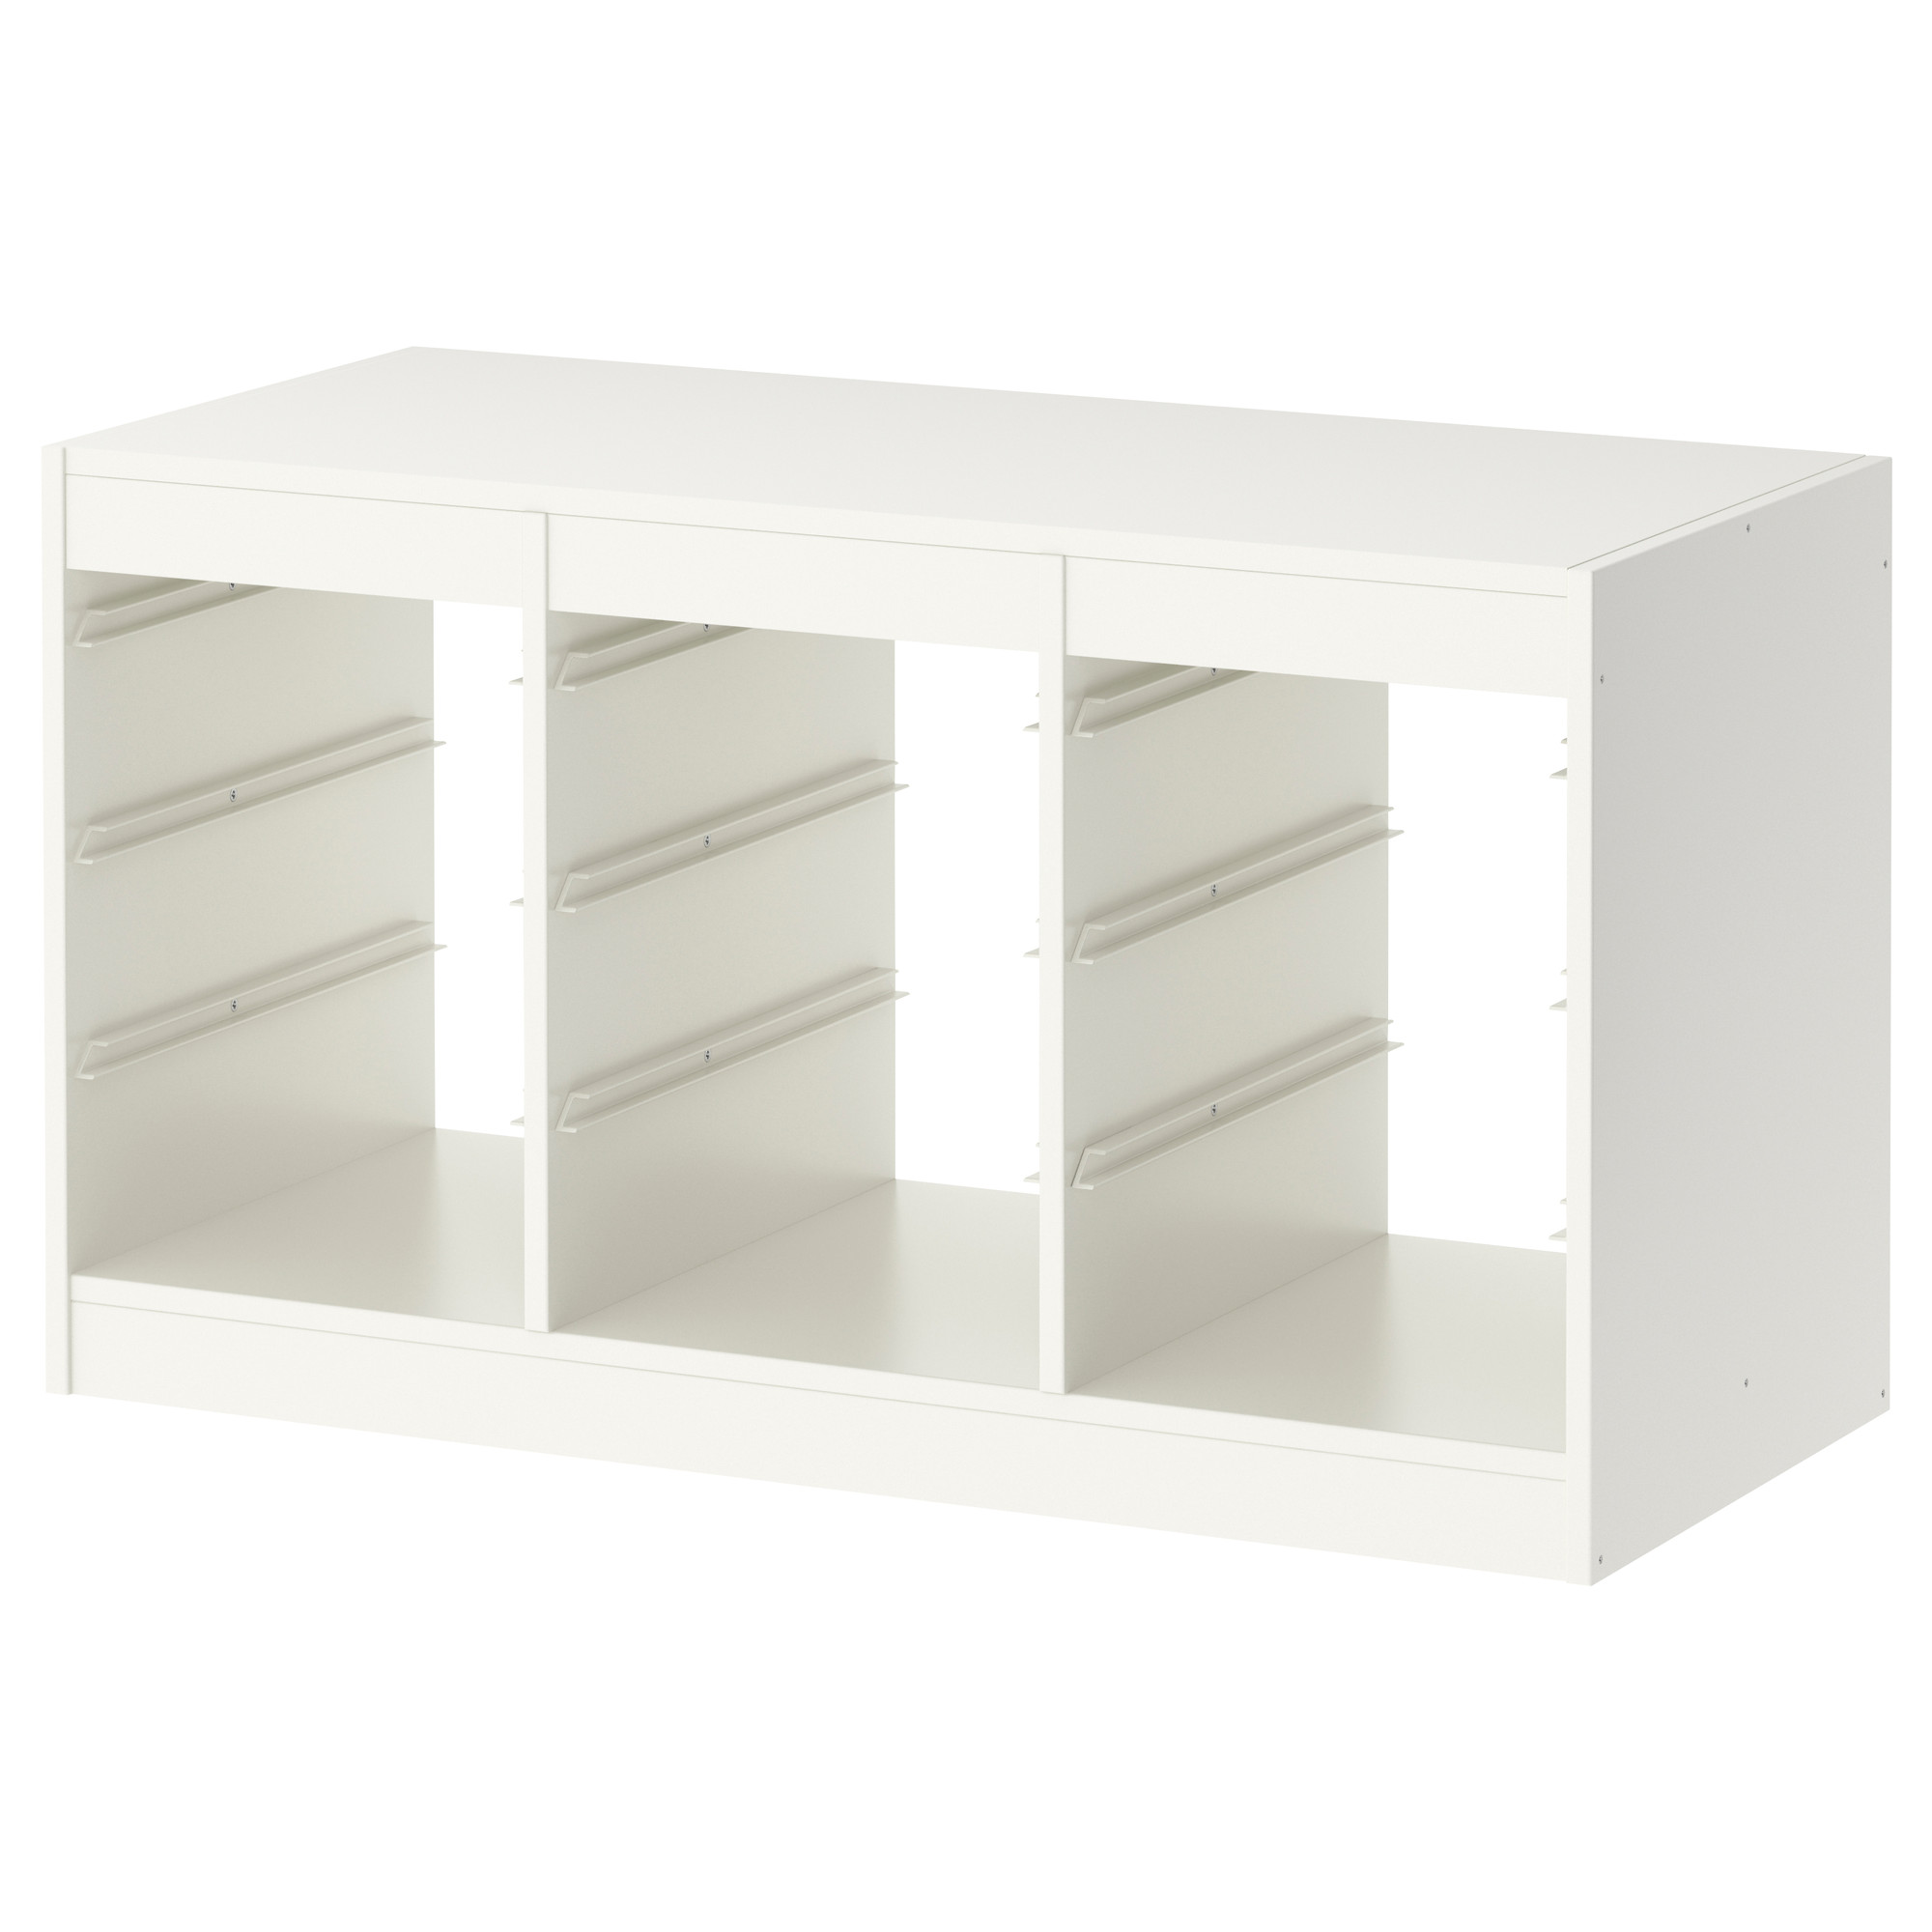 Ikea Toy Storage N White For Smart Furniture